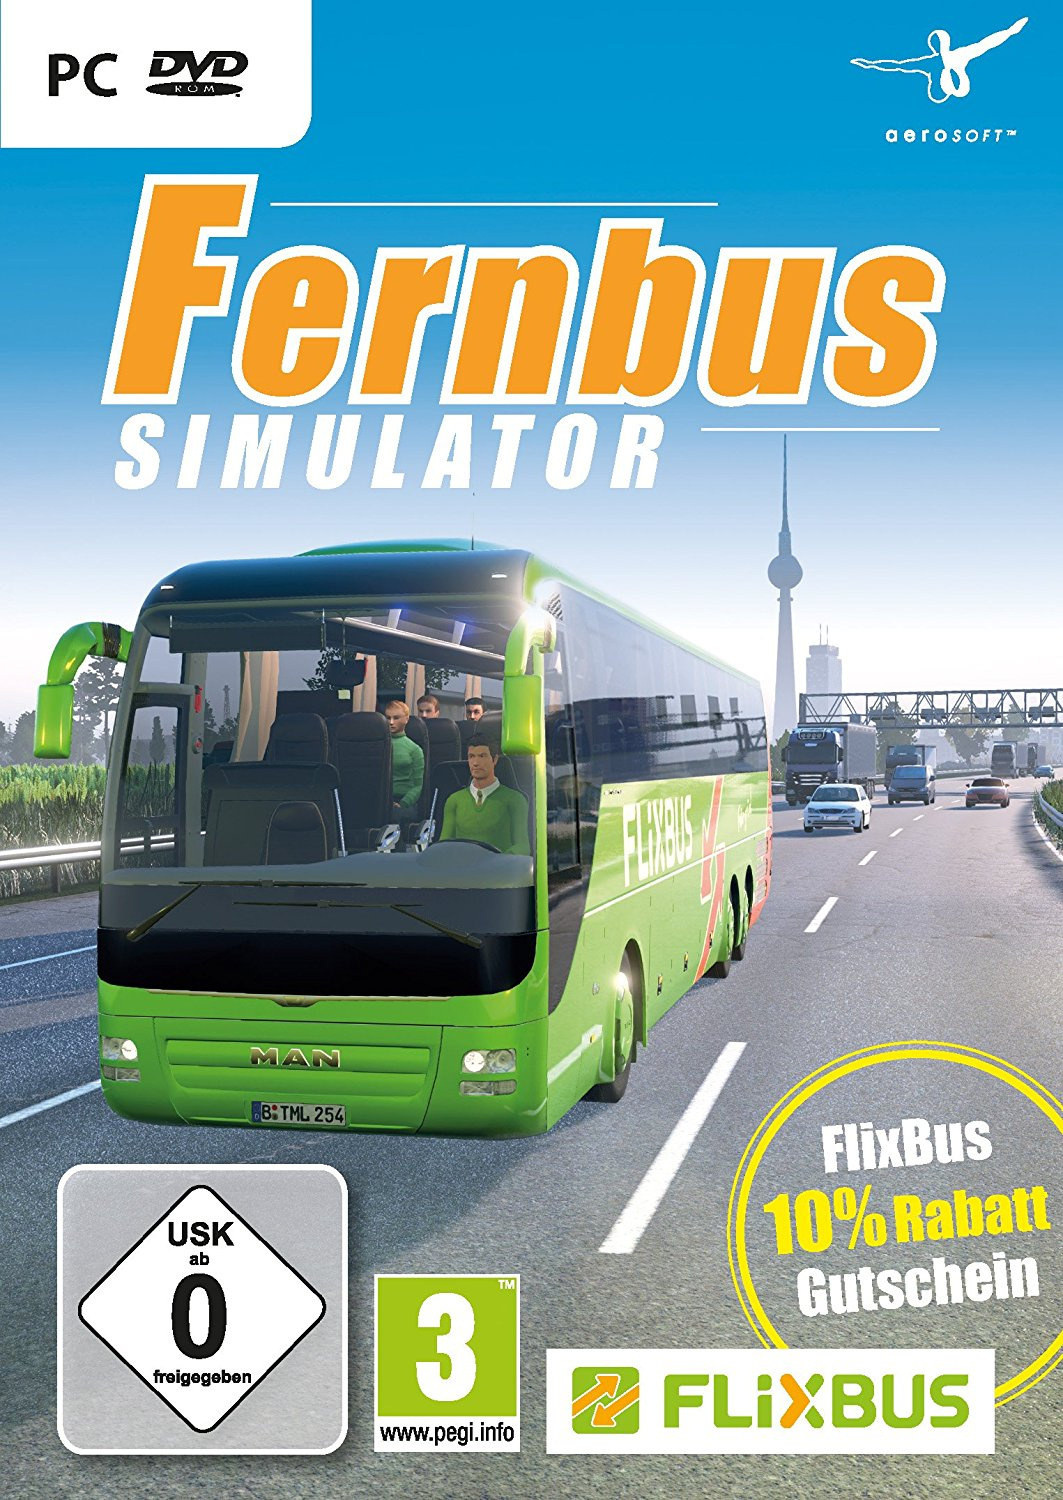 https://img5.downloadha.com/hosein/Game/October%202017/22/Fernbus-Simulator-pc-cover-large.jpg